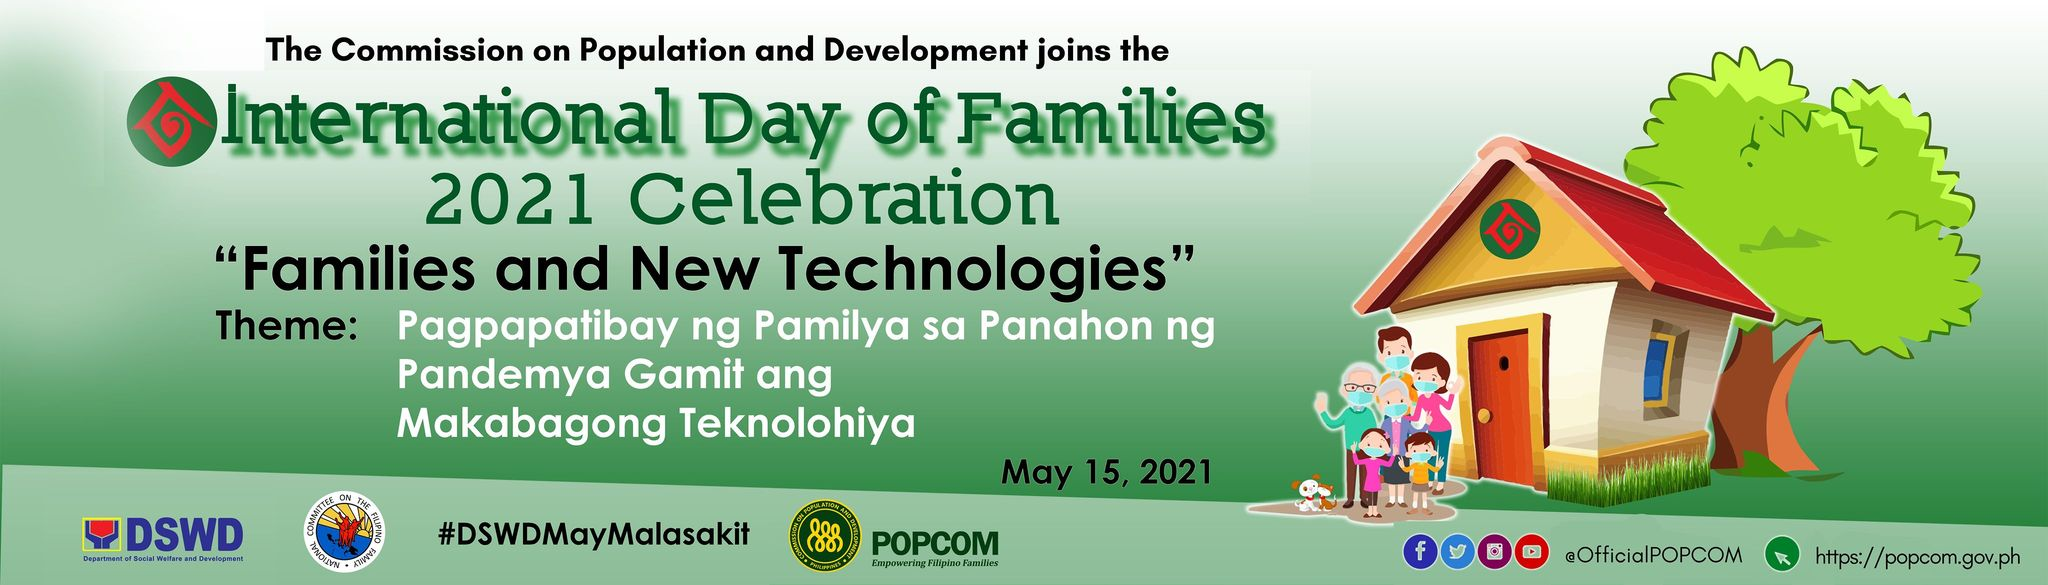 2021-international-day-of-families